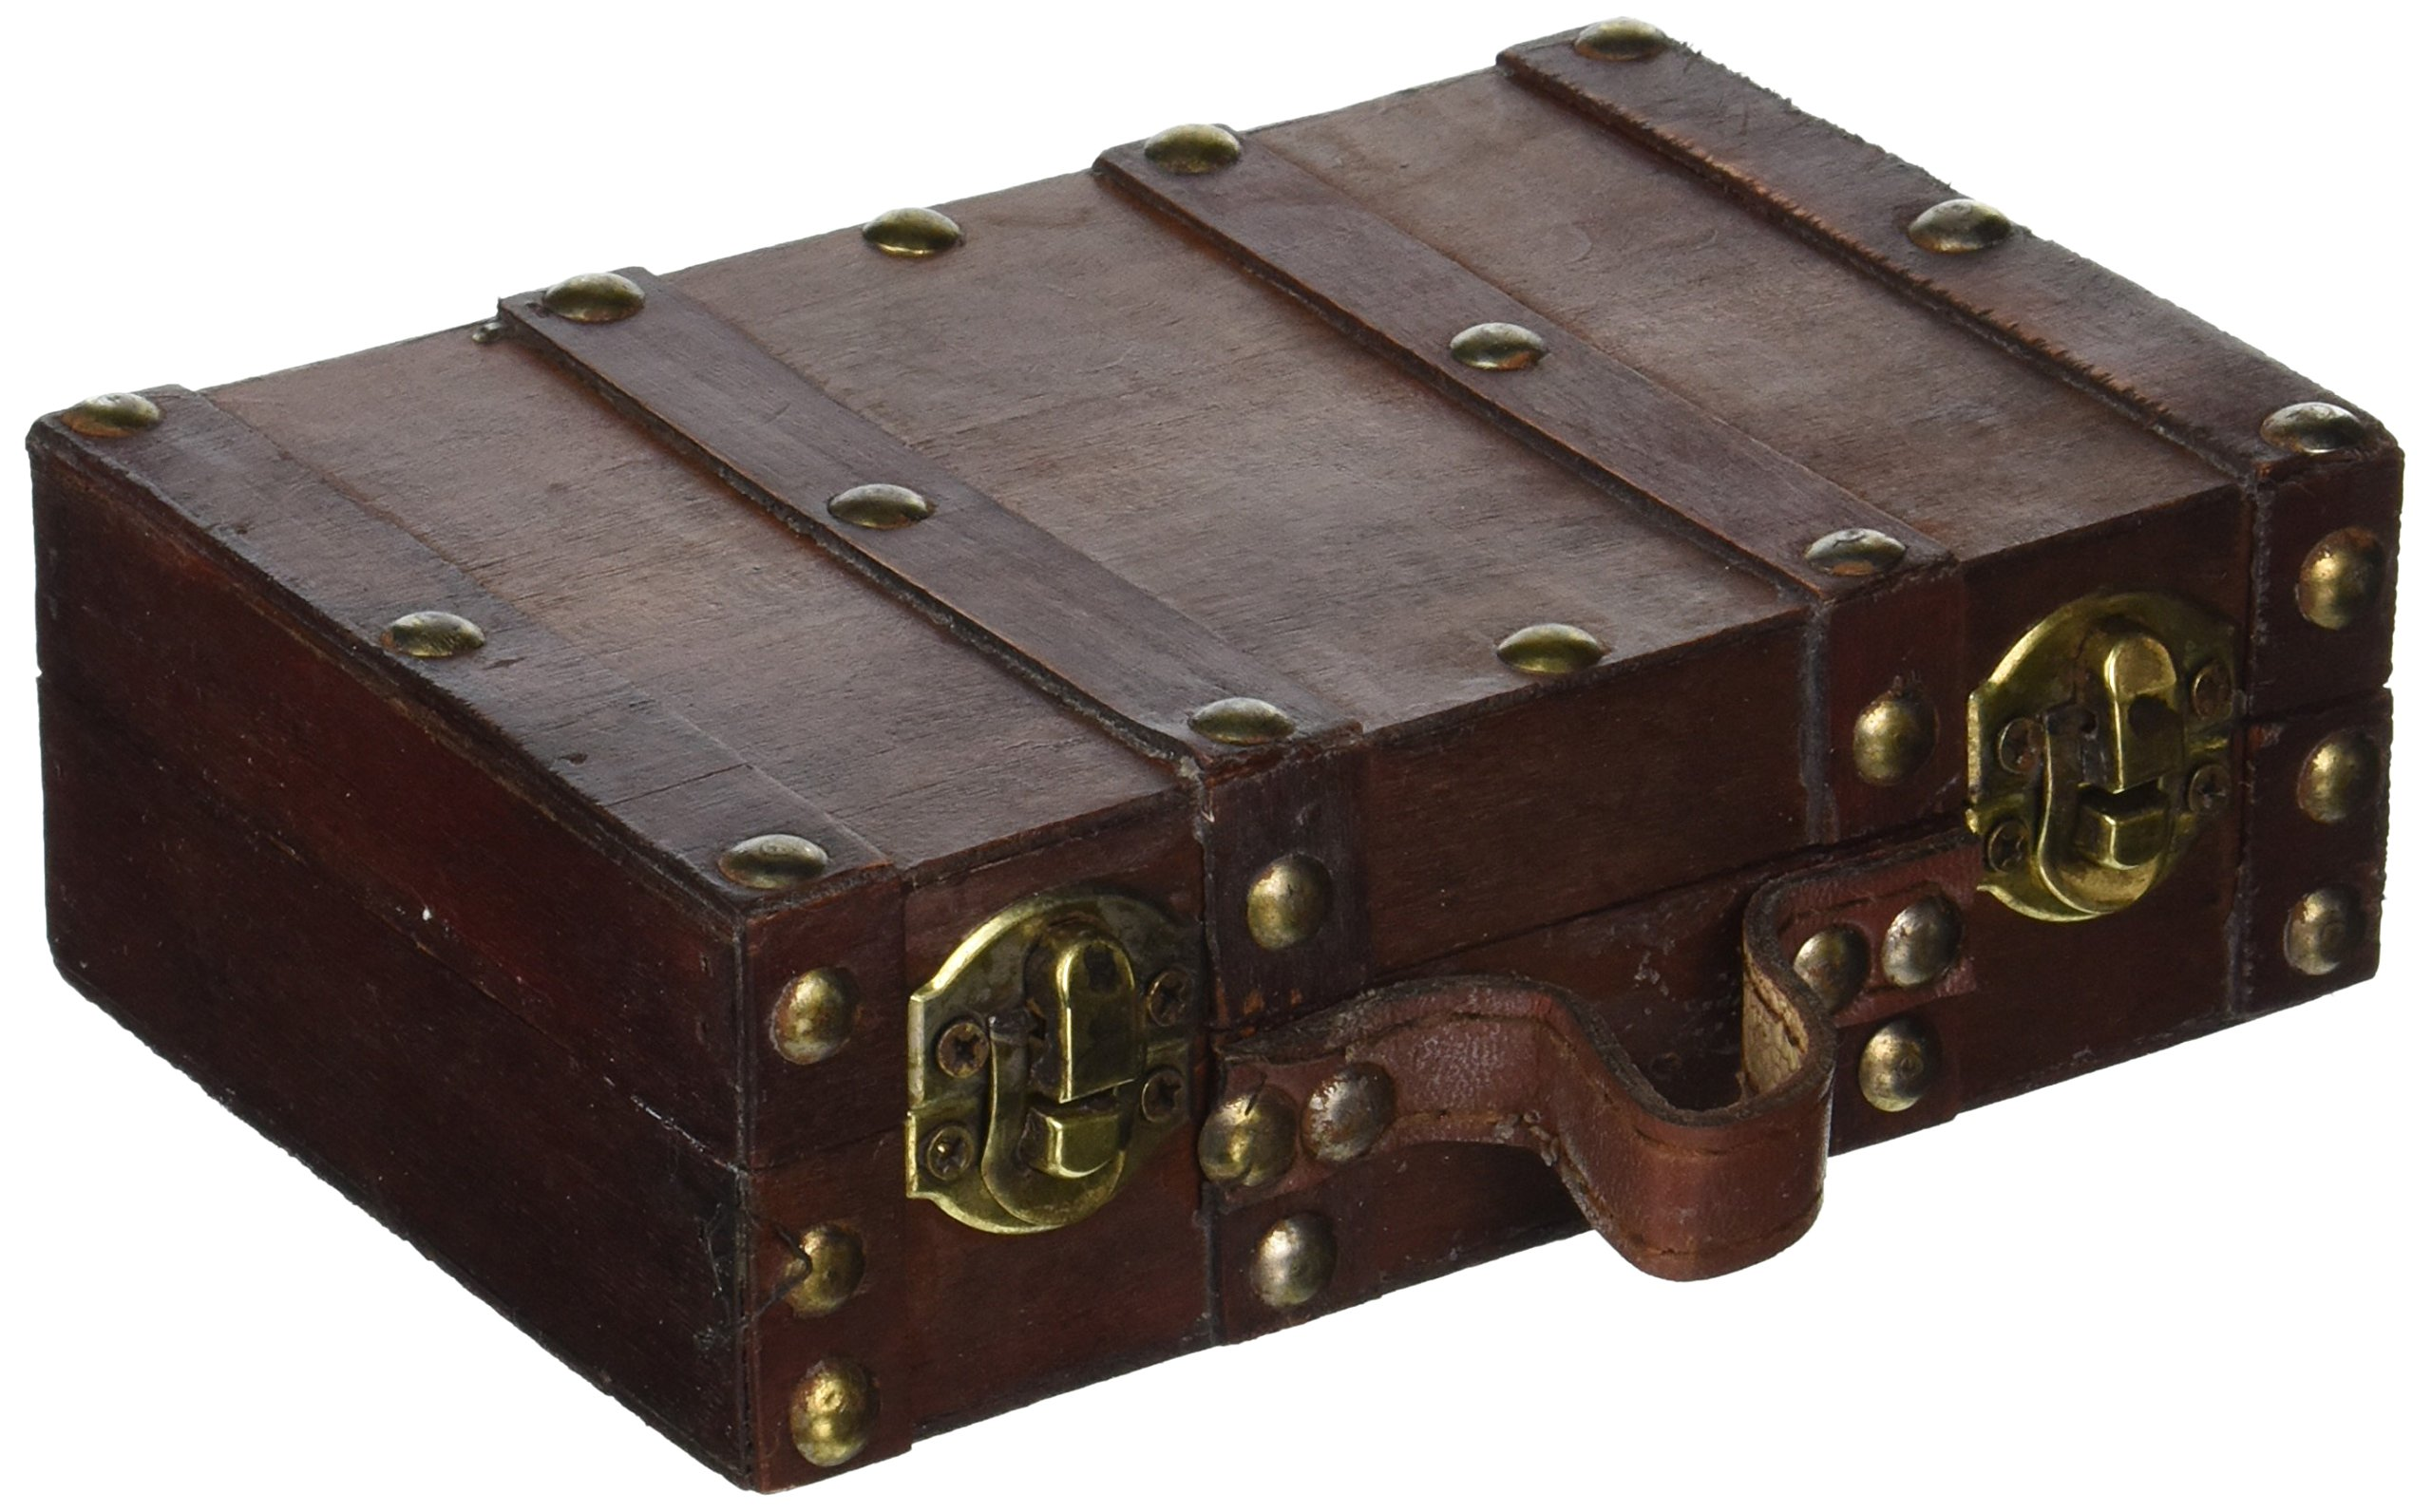 Vintage Decorative Suitcases Decorative Box From Quickway Imports That Is Great For